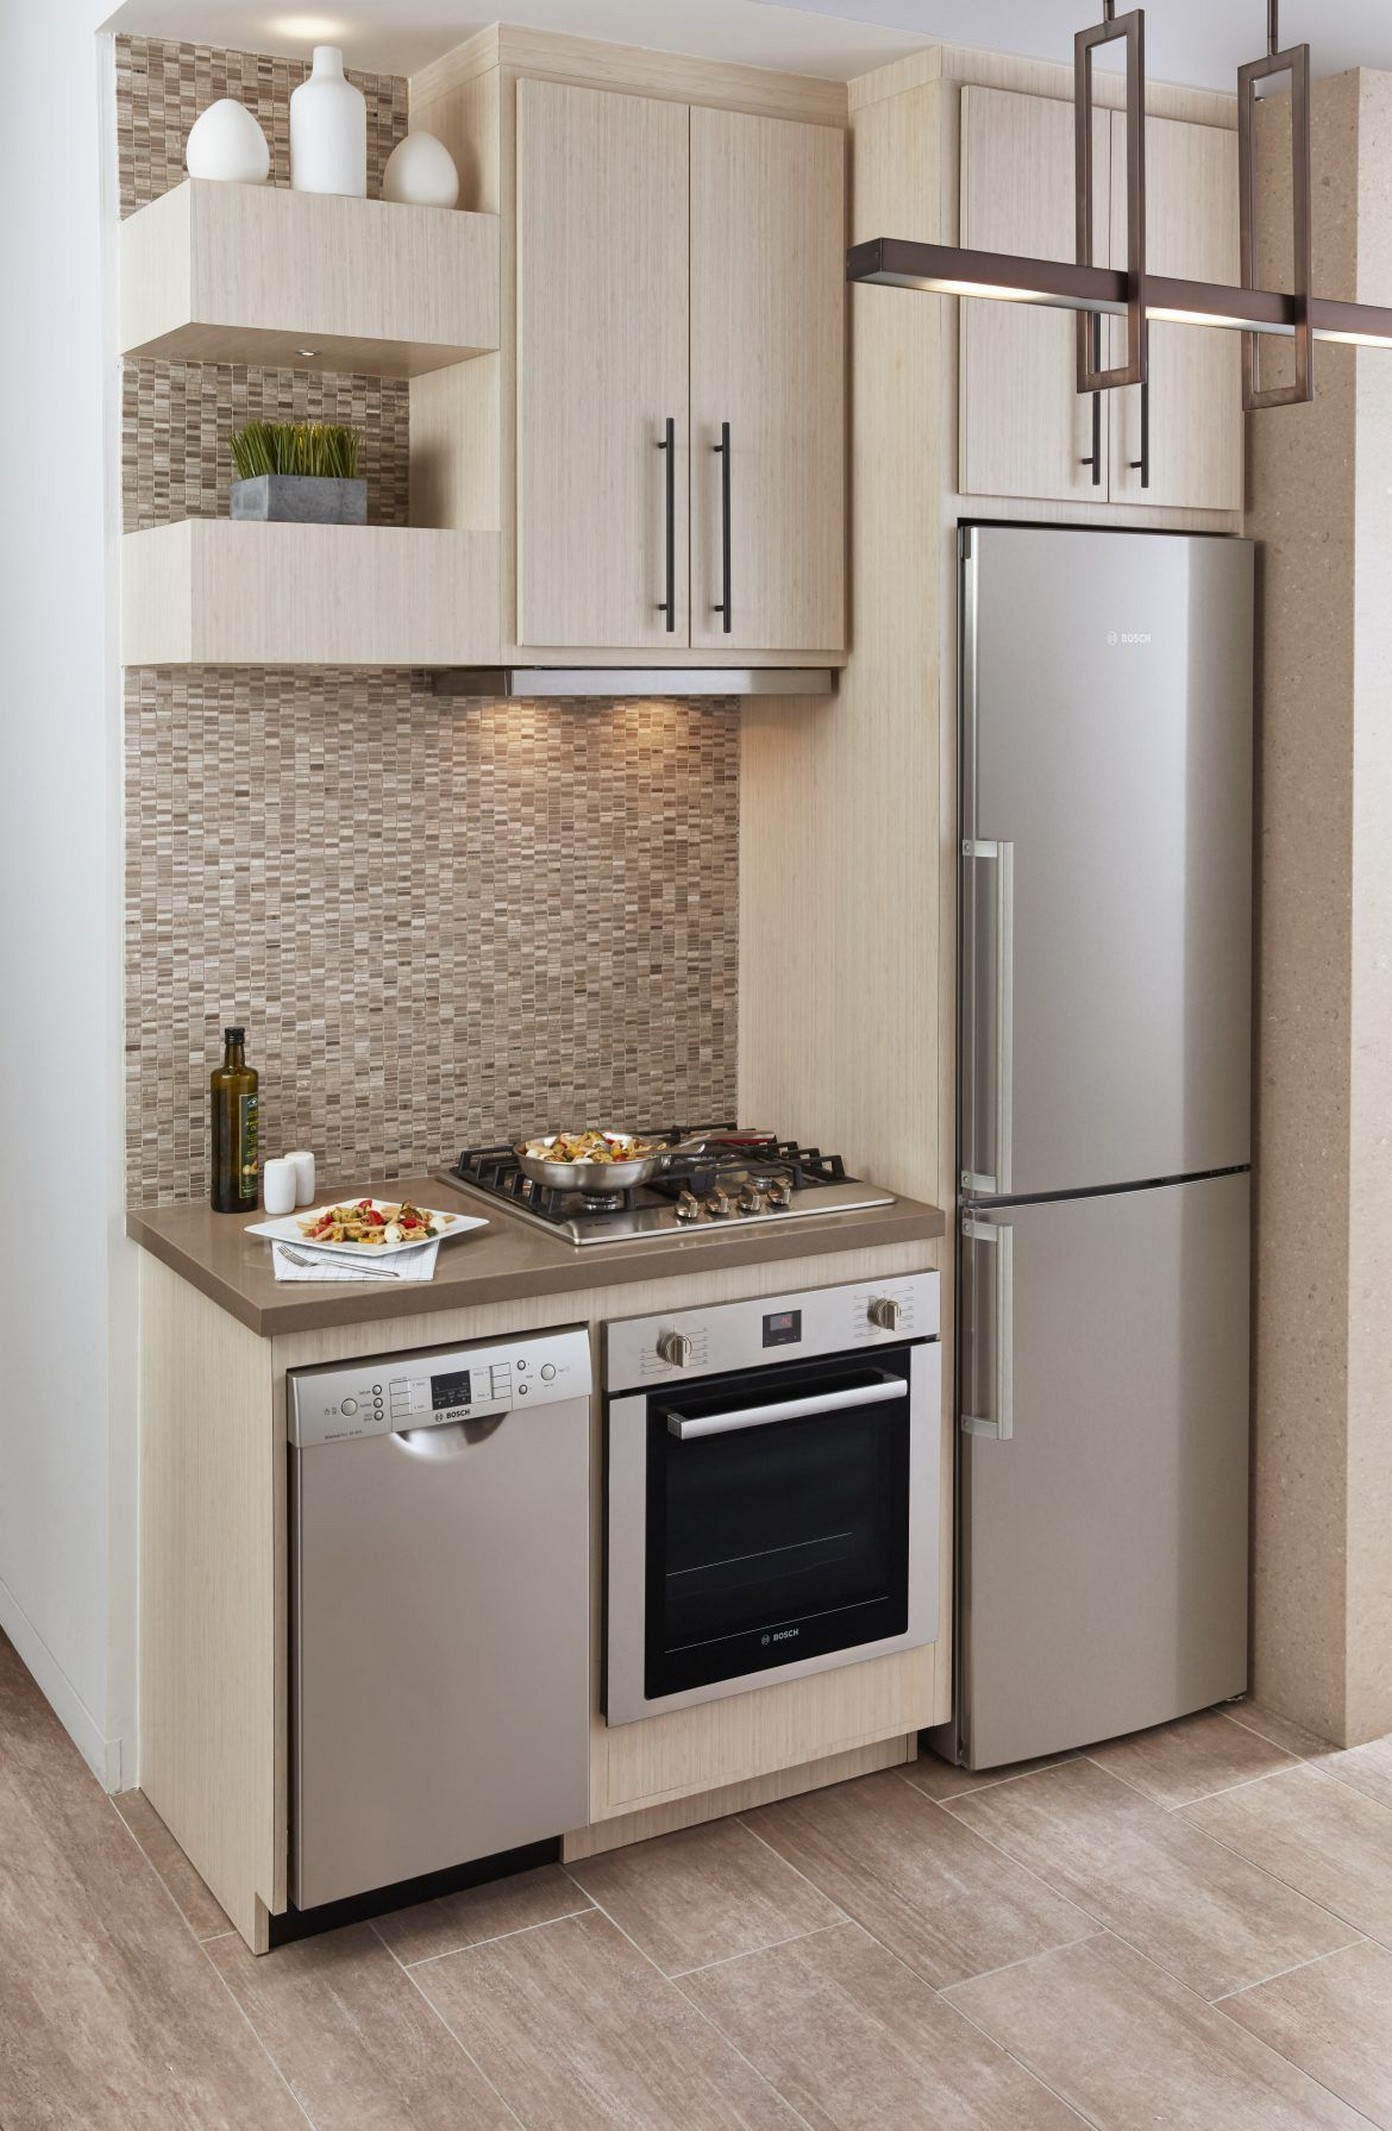 86 Some Small Kitchen Ideas To Help You Do Up Your Kitchen 47